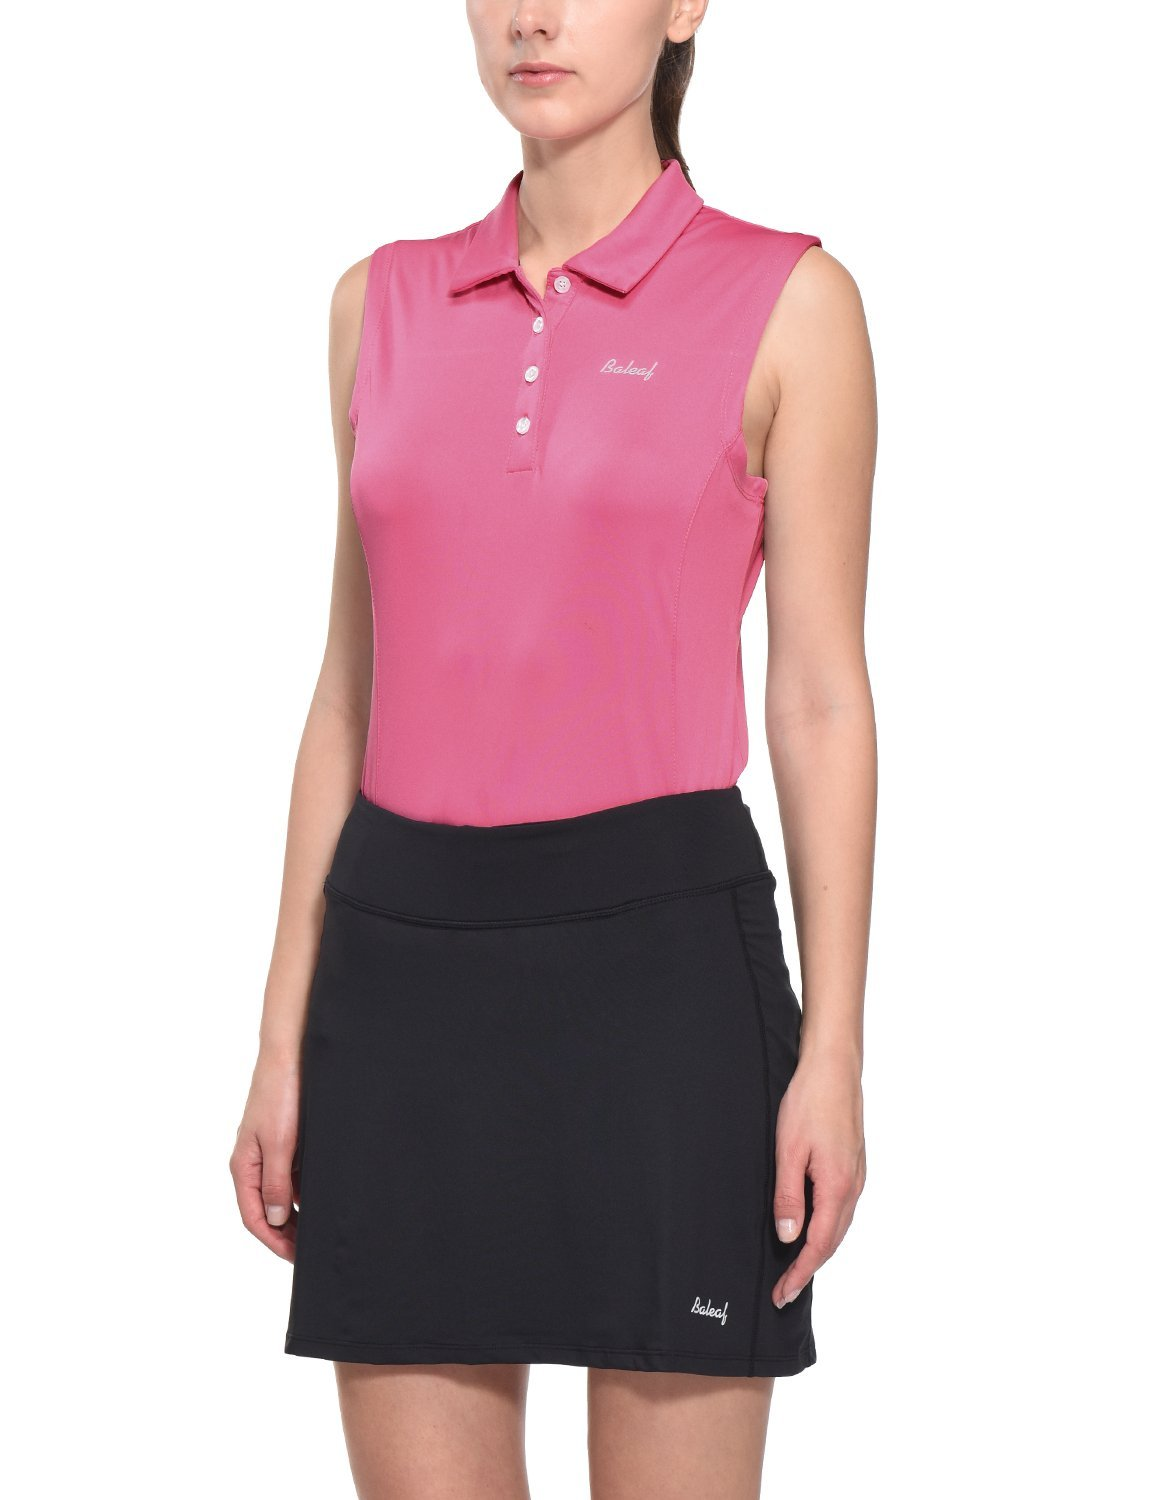 Baleaf Women's Golf Tennis Sleeveless Polo Shirts Quick Dry UPF 50+ Pink Size S by Baleaf